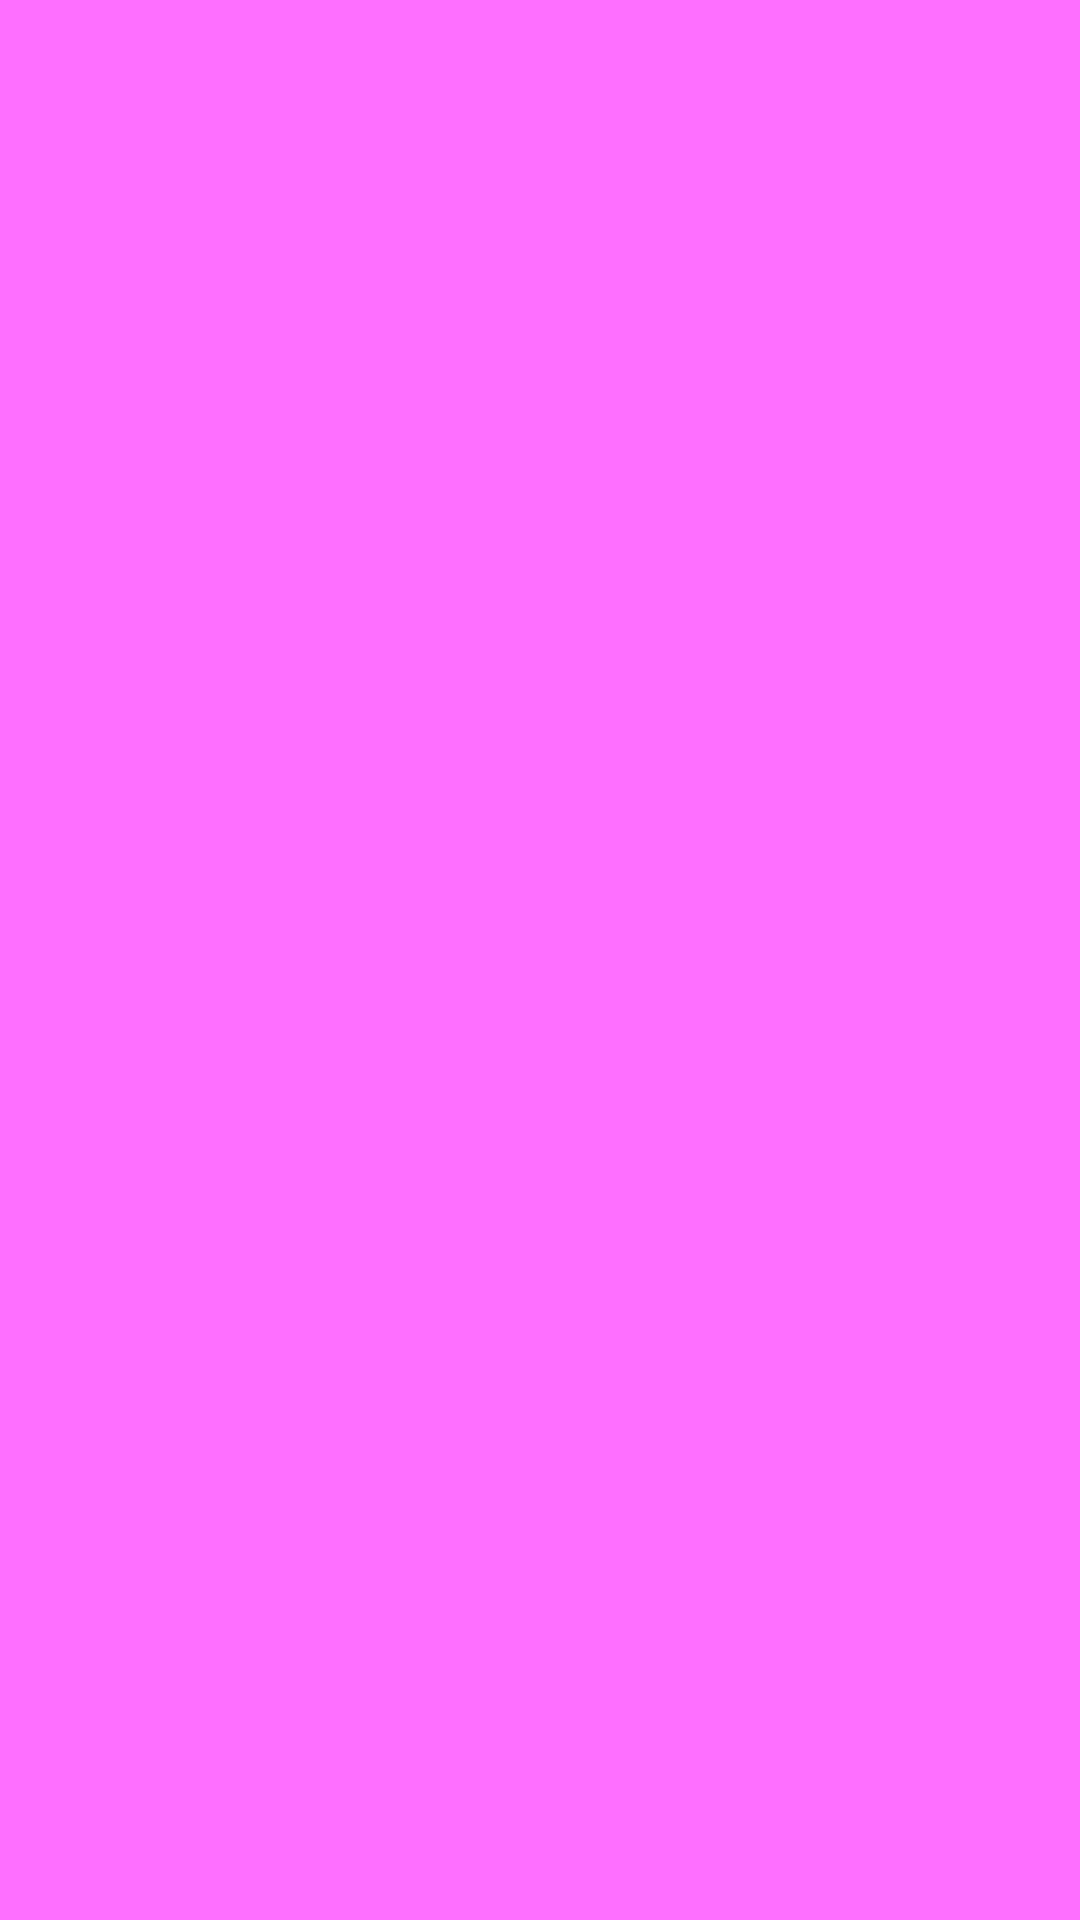 1080x1920 Shocking Pink Crayola Solid Color Background